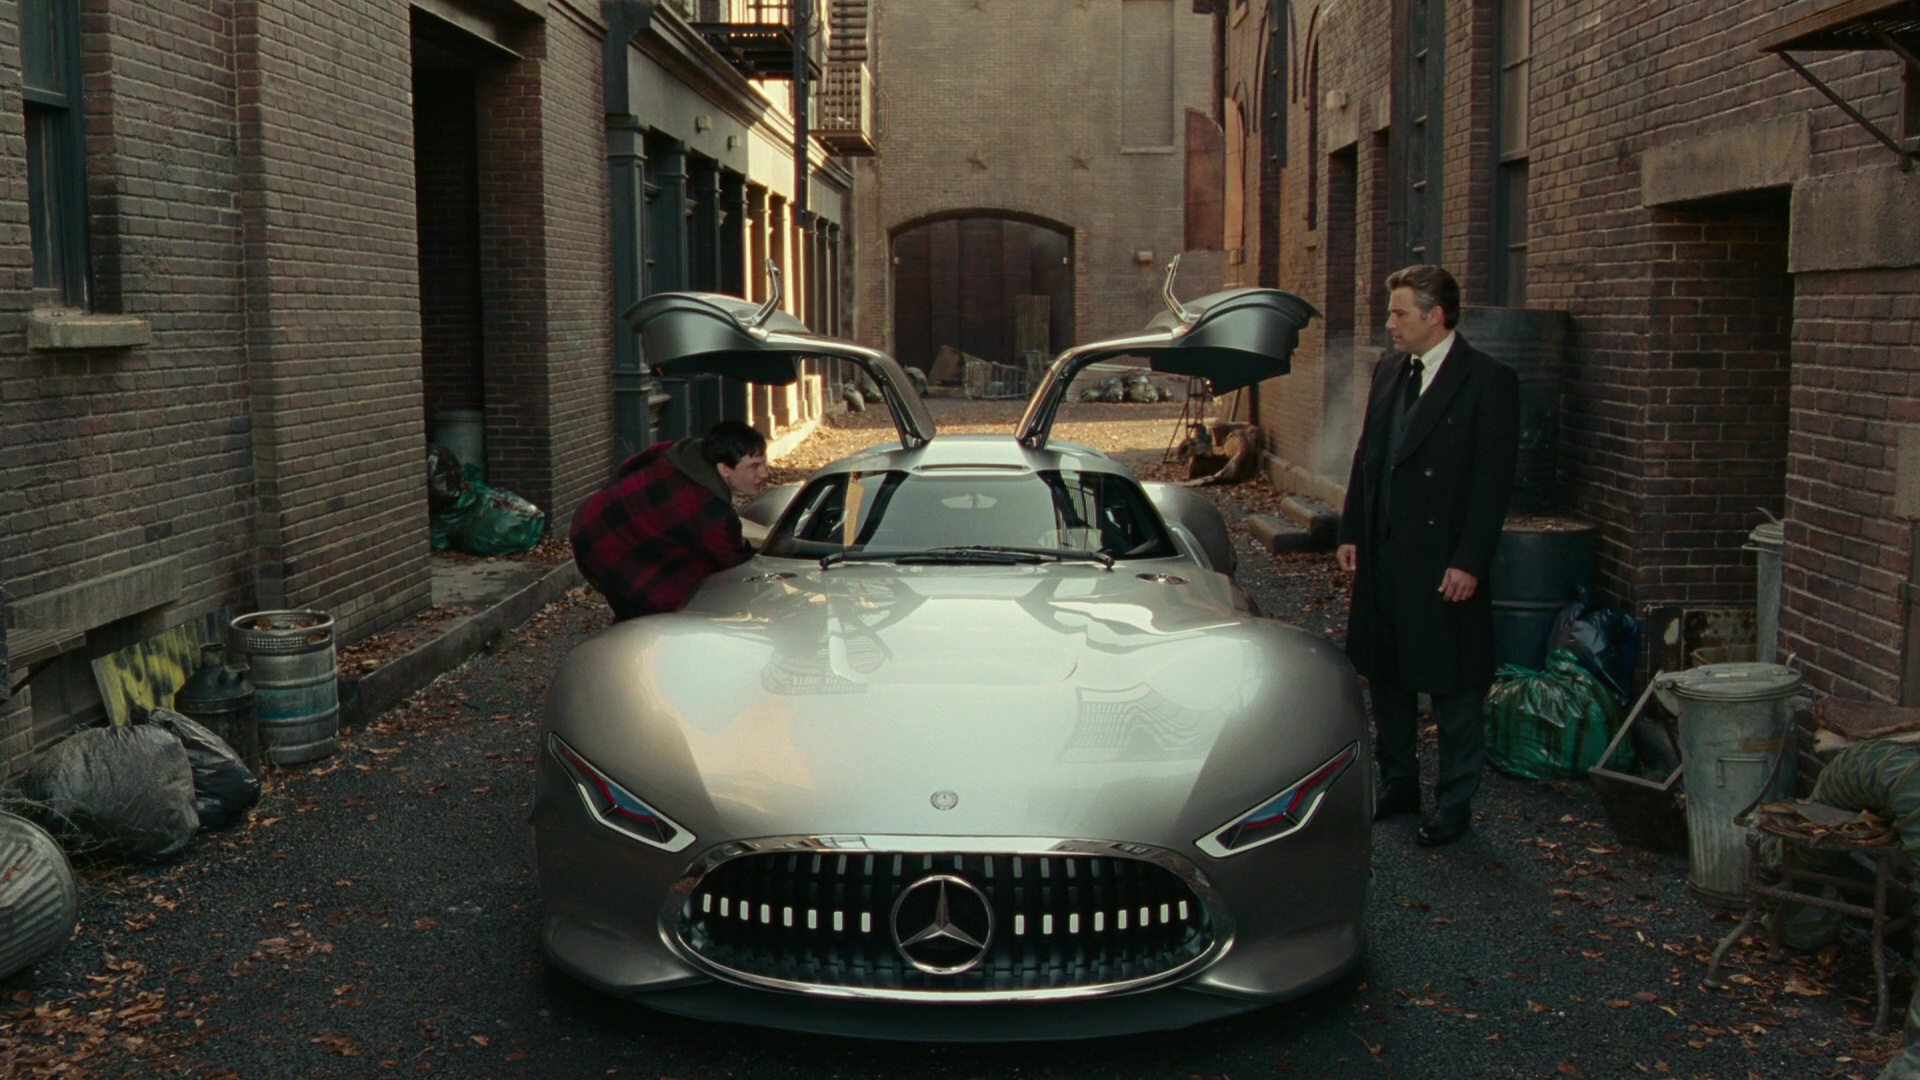 Mercedes Benz Amg Vision Car Used By Ben Affleck In Justice League 2017 Movie